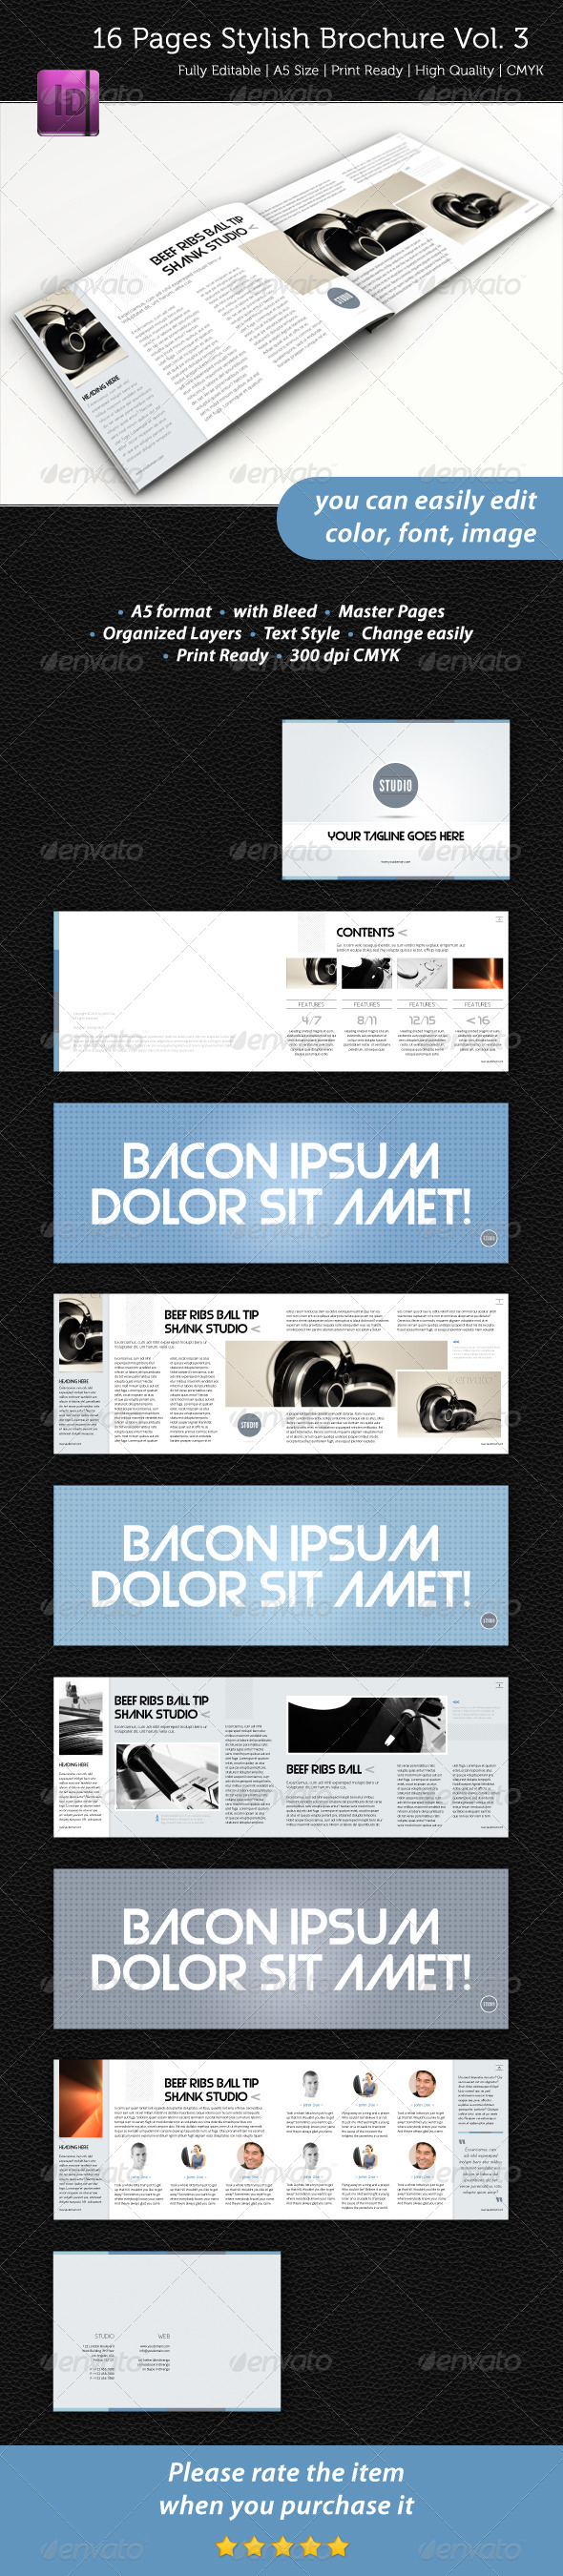 16 Pages Stylish Brochure Vol. 3 - Informational Brochures